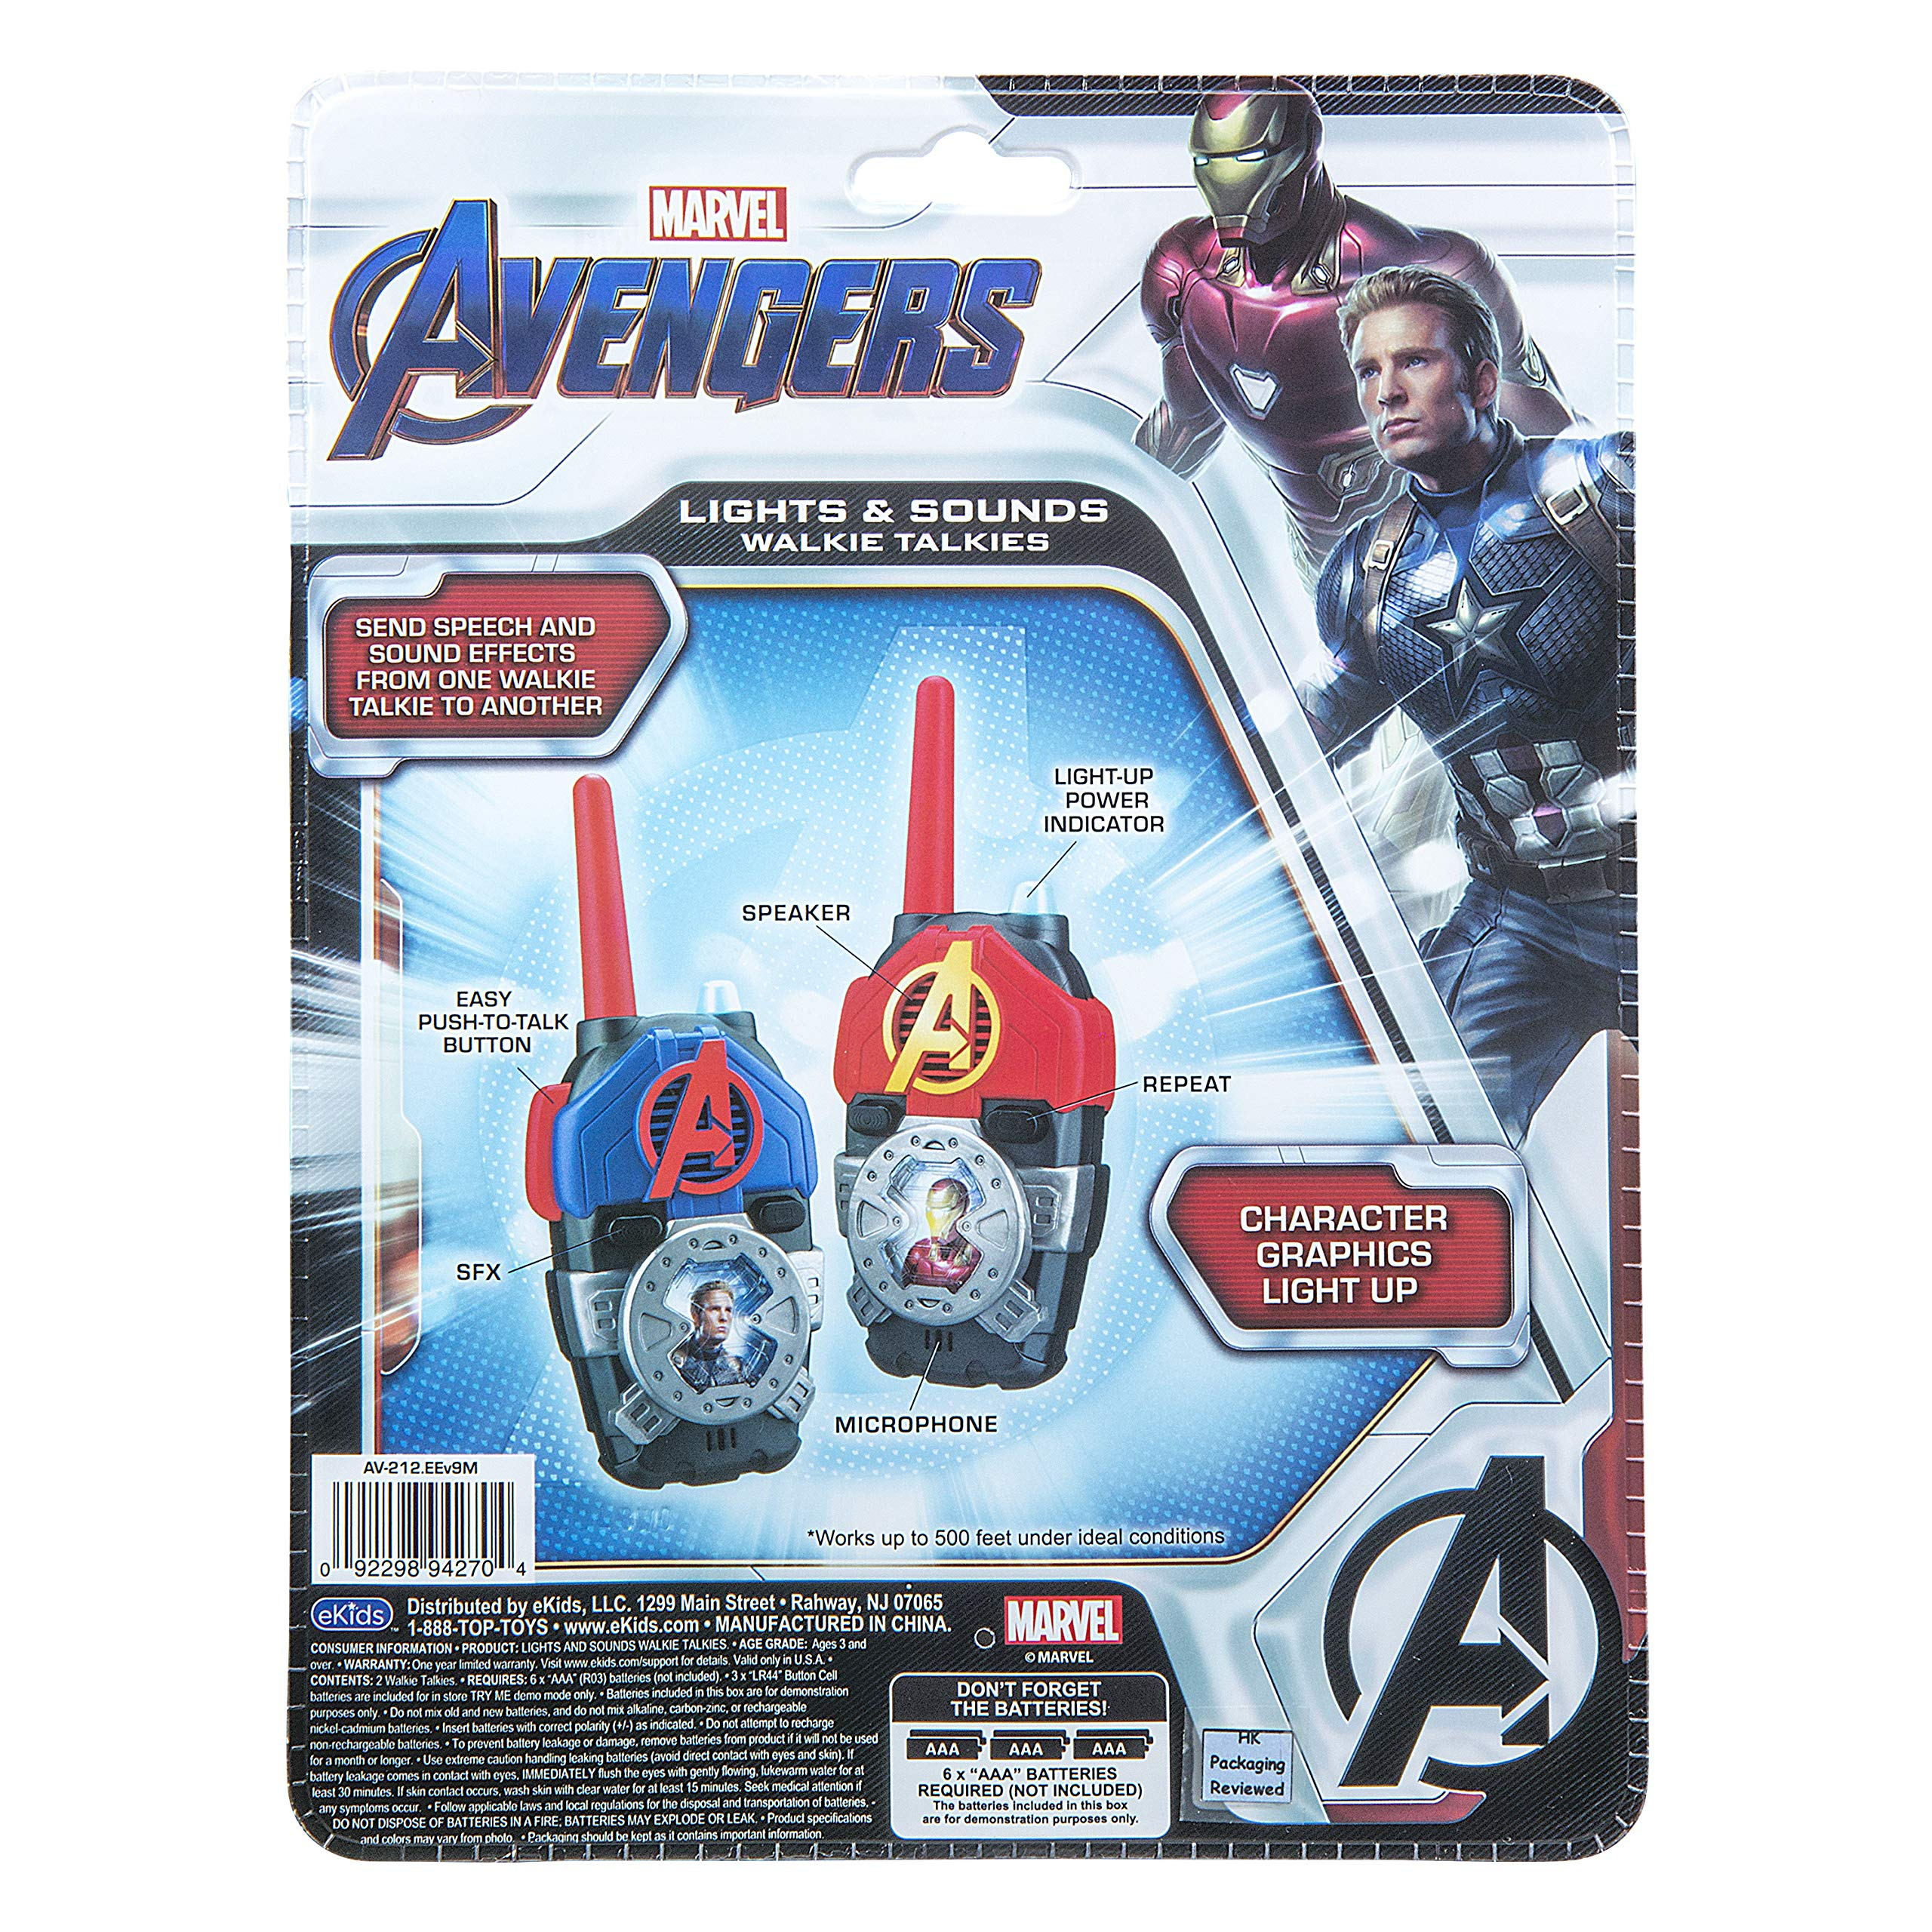 eKids Avengers Endgame FRS Walkie Talkies with Lights & Sounds Kid Friendly Easy to Use by eKids (Image #6)